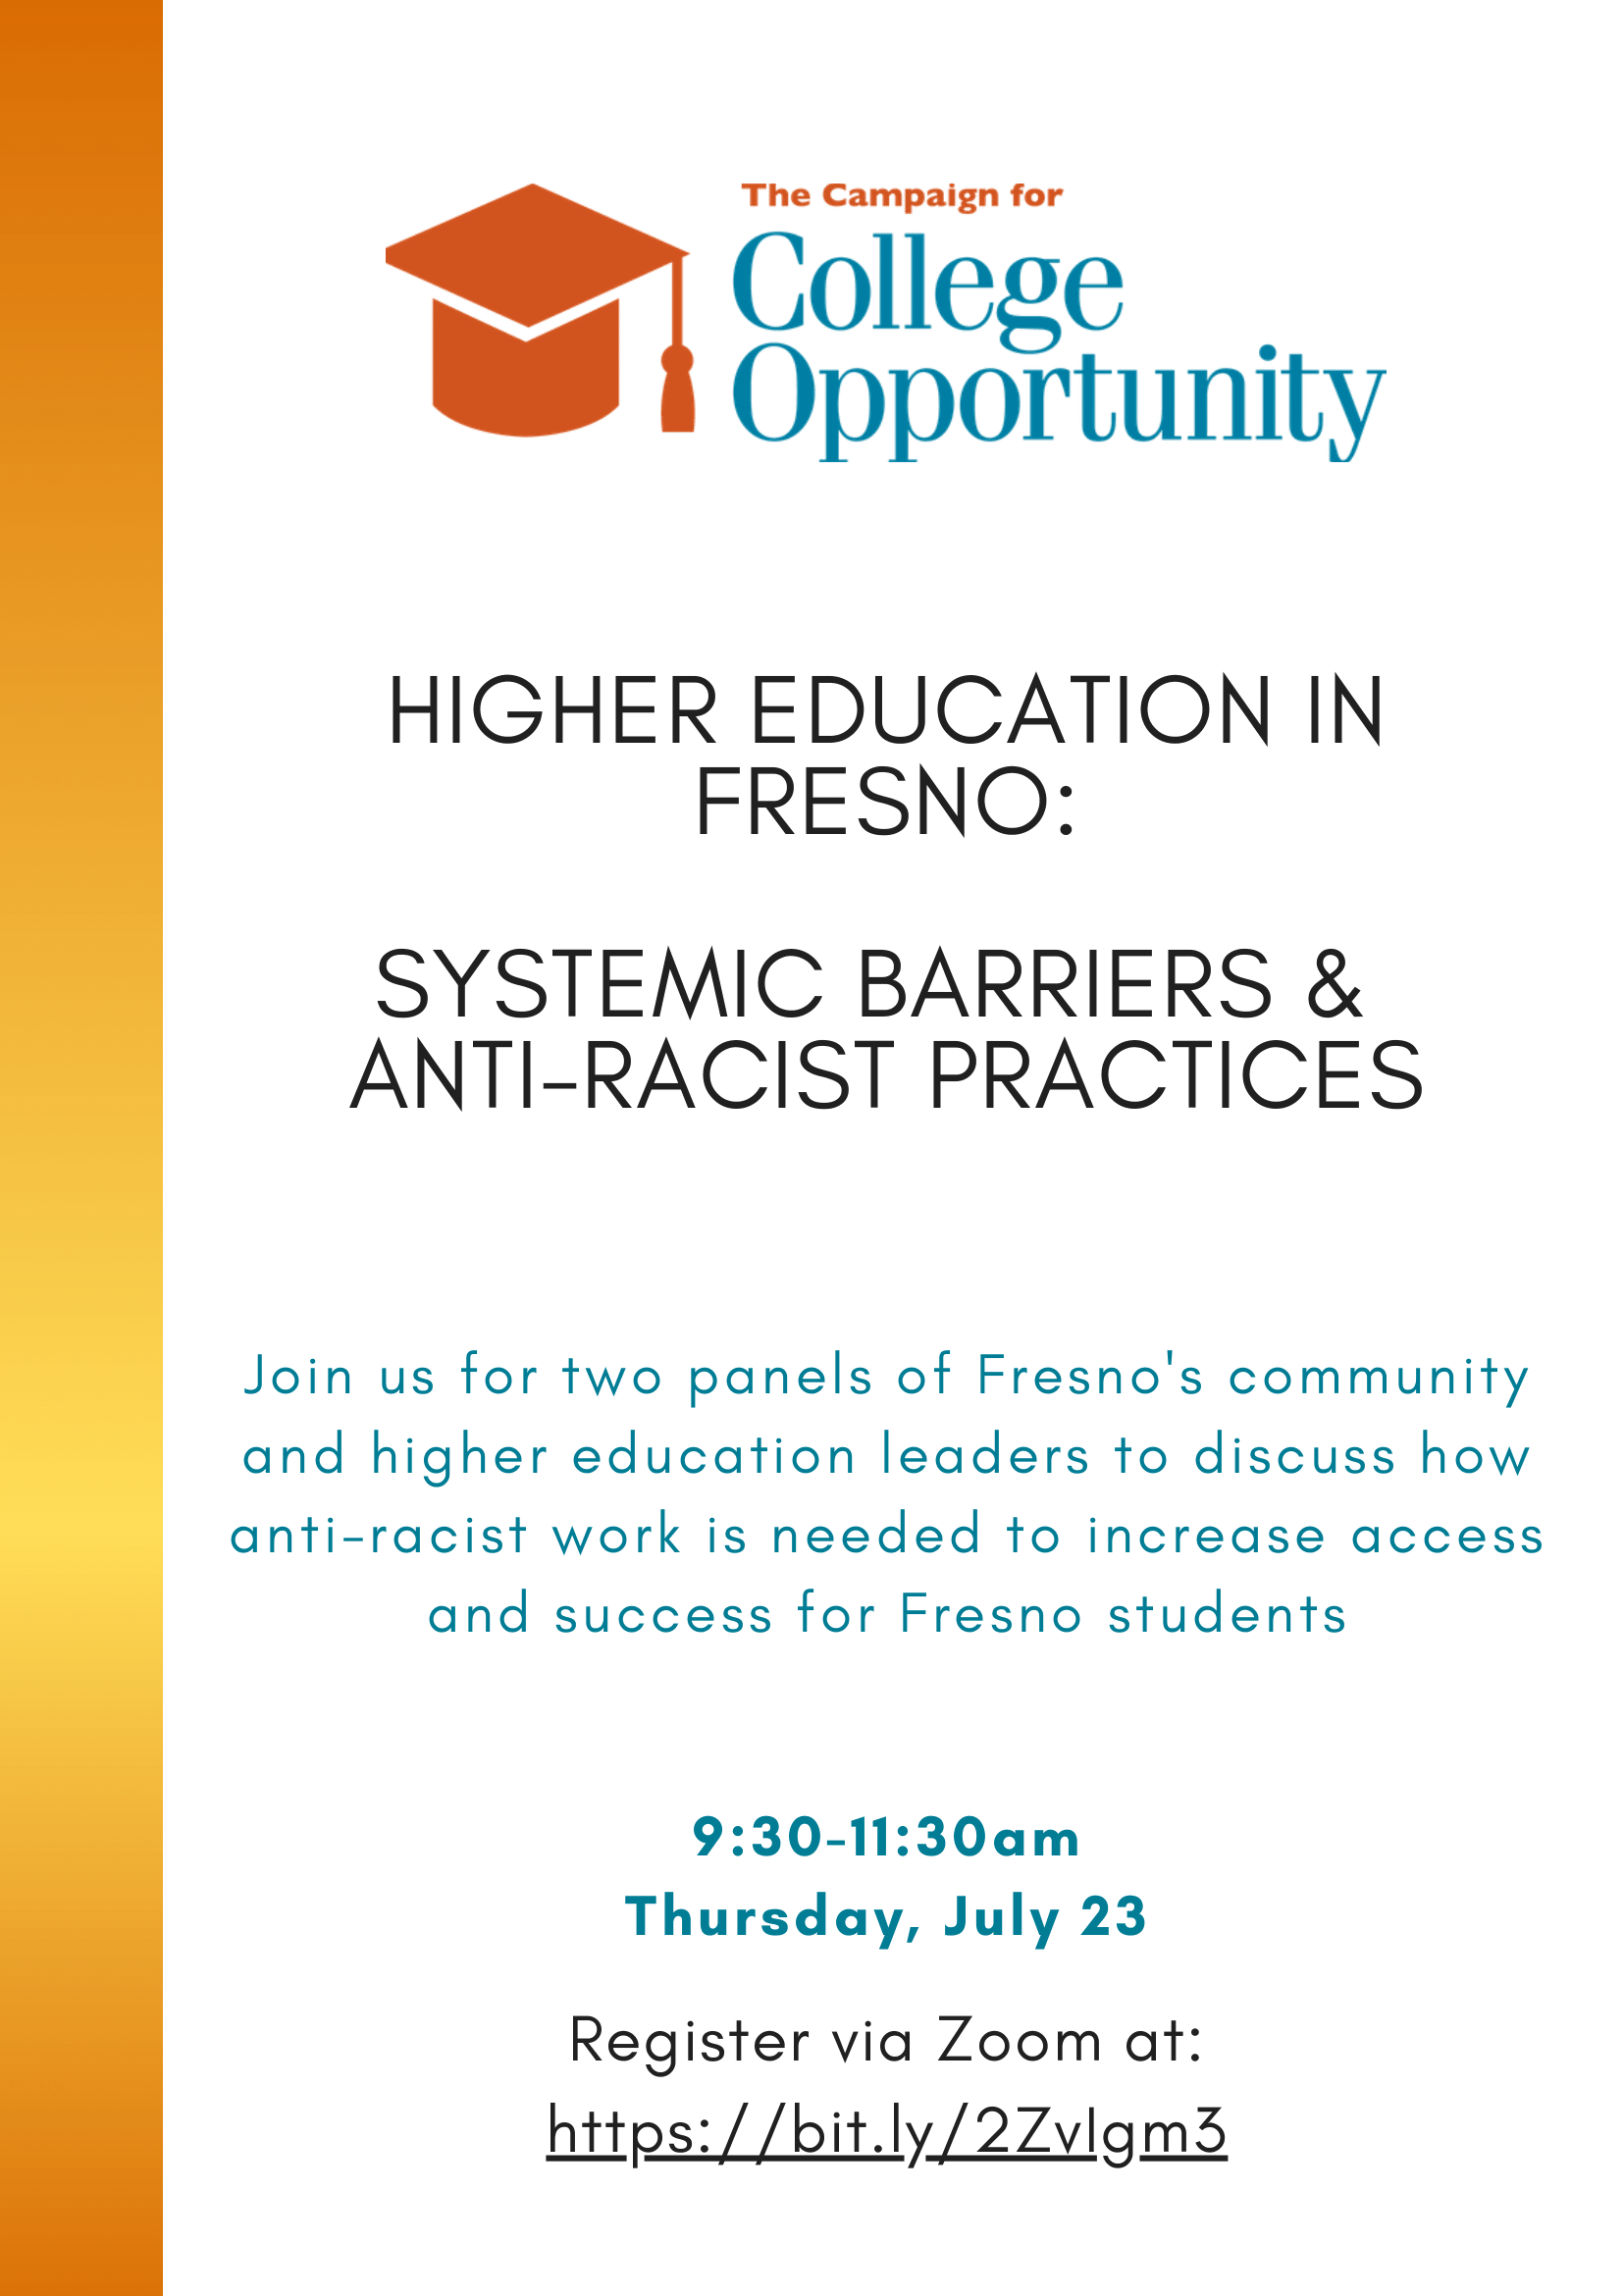 Fresno Higher Ed. Engagement Hub: Systemic Barriers & Anti-Racist Solutions to Access & Success